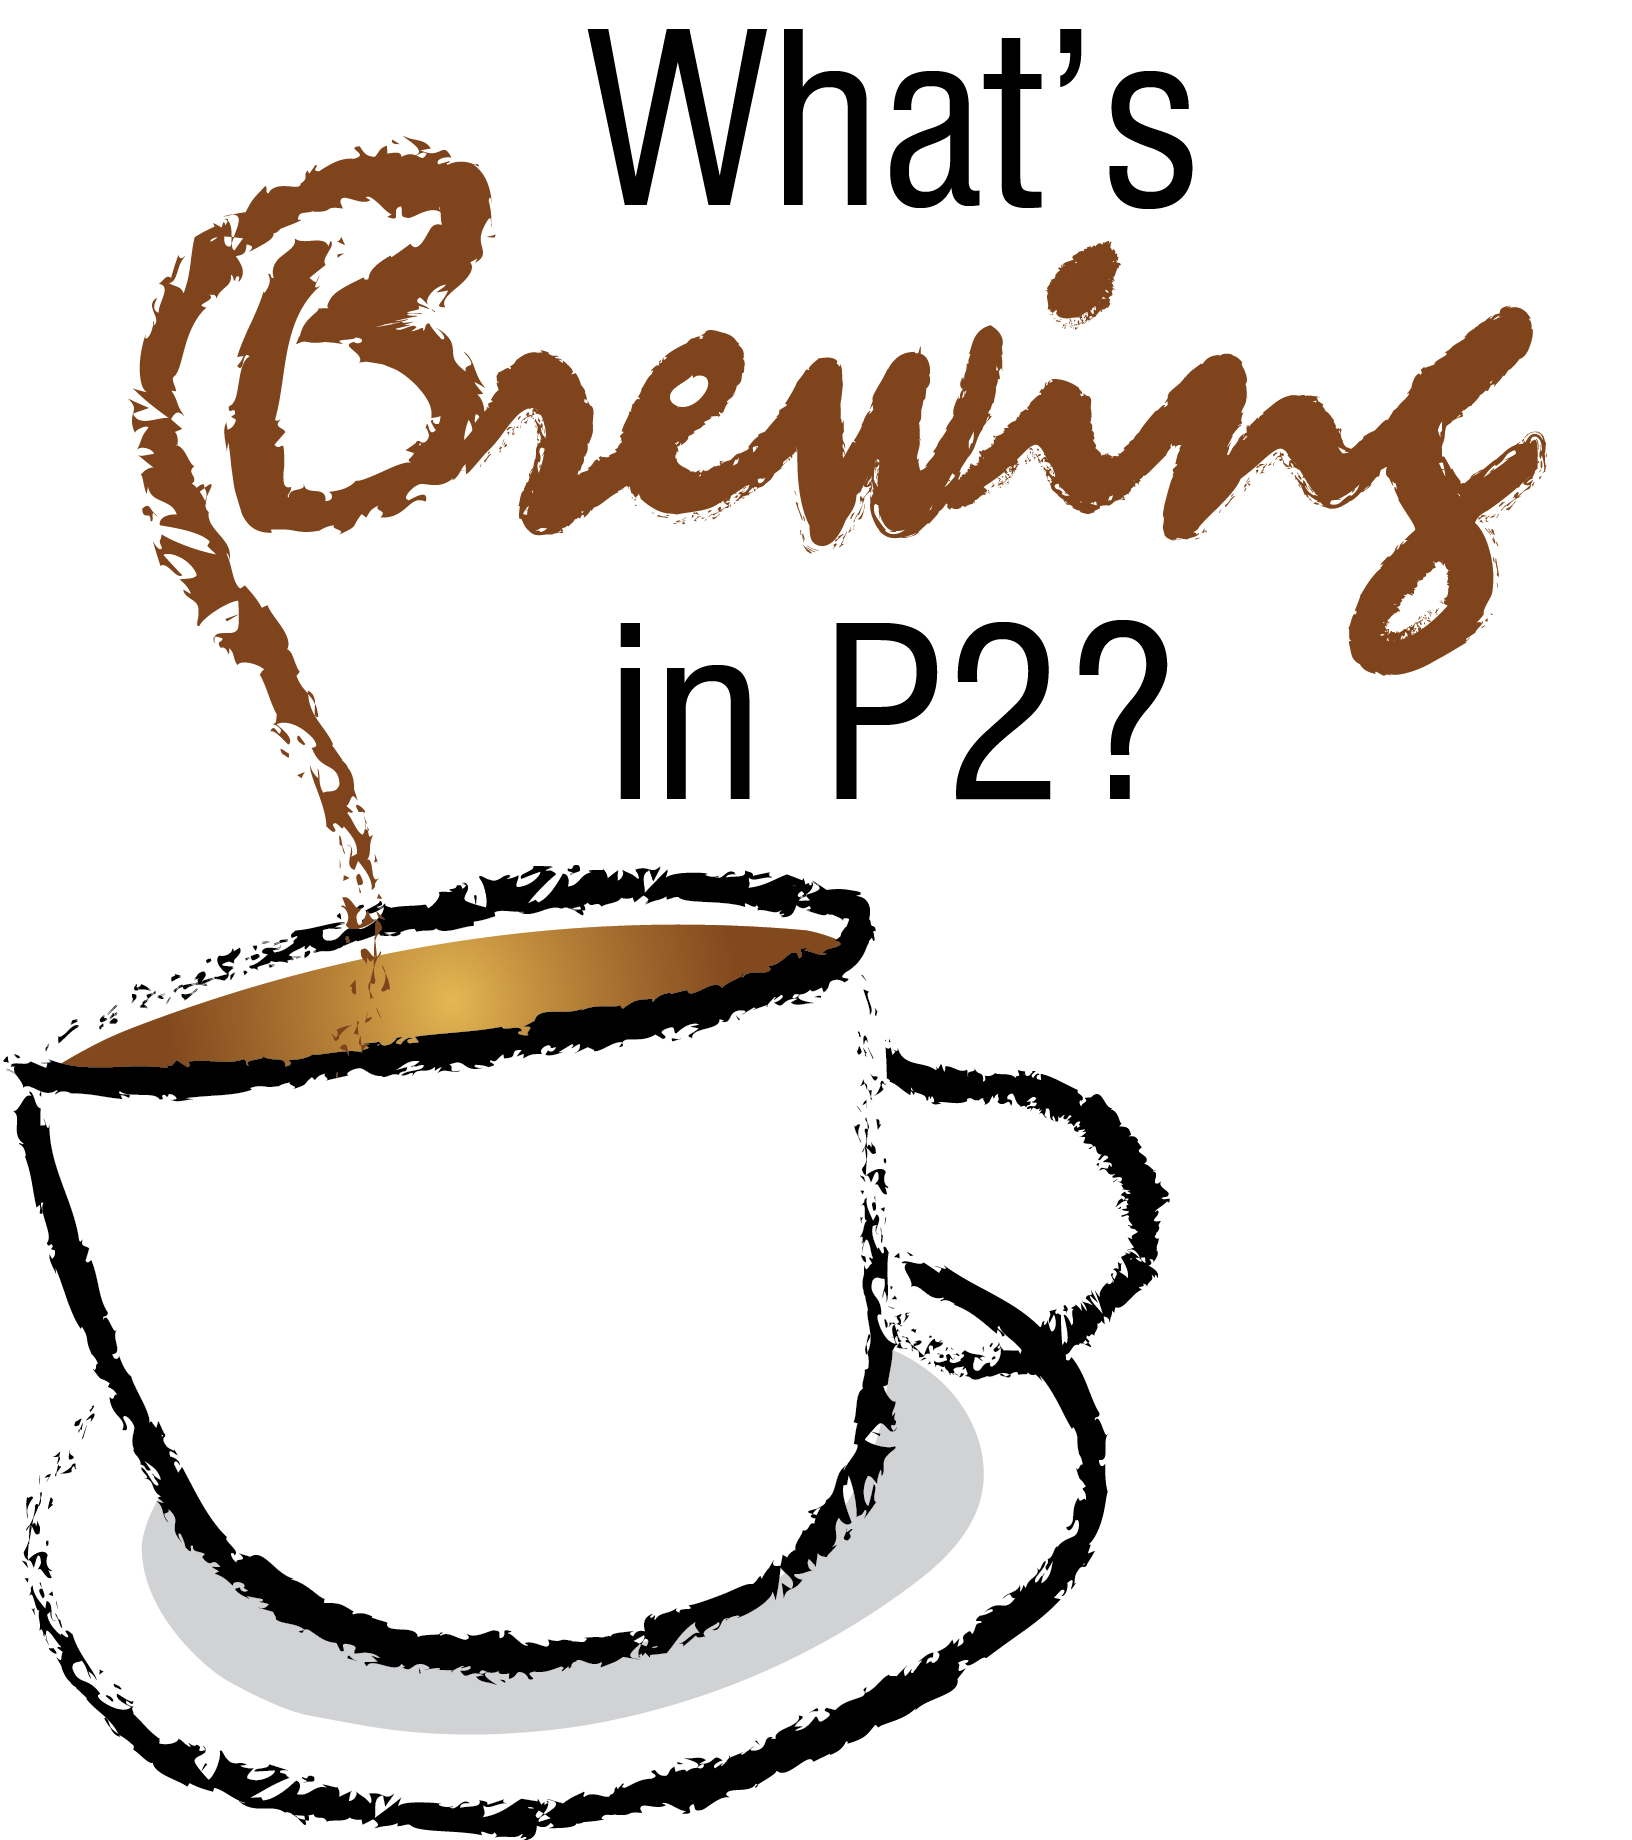 What's Brewing in P2